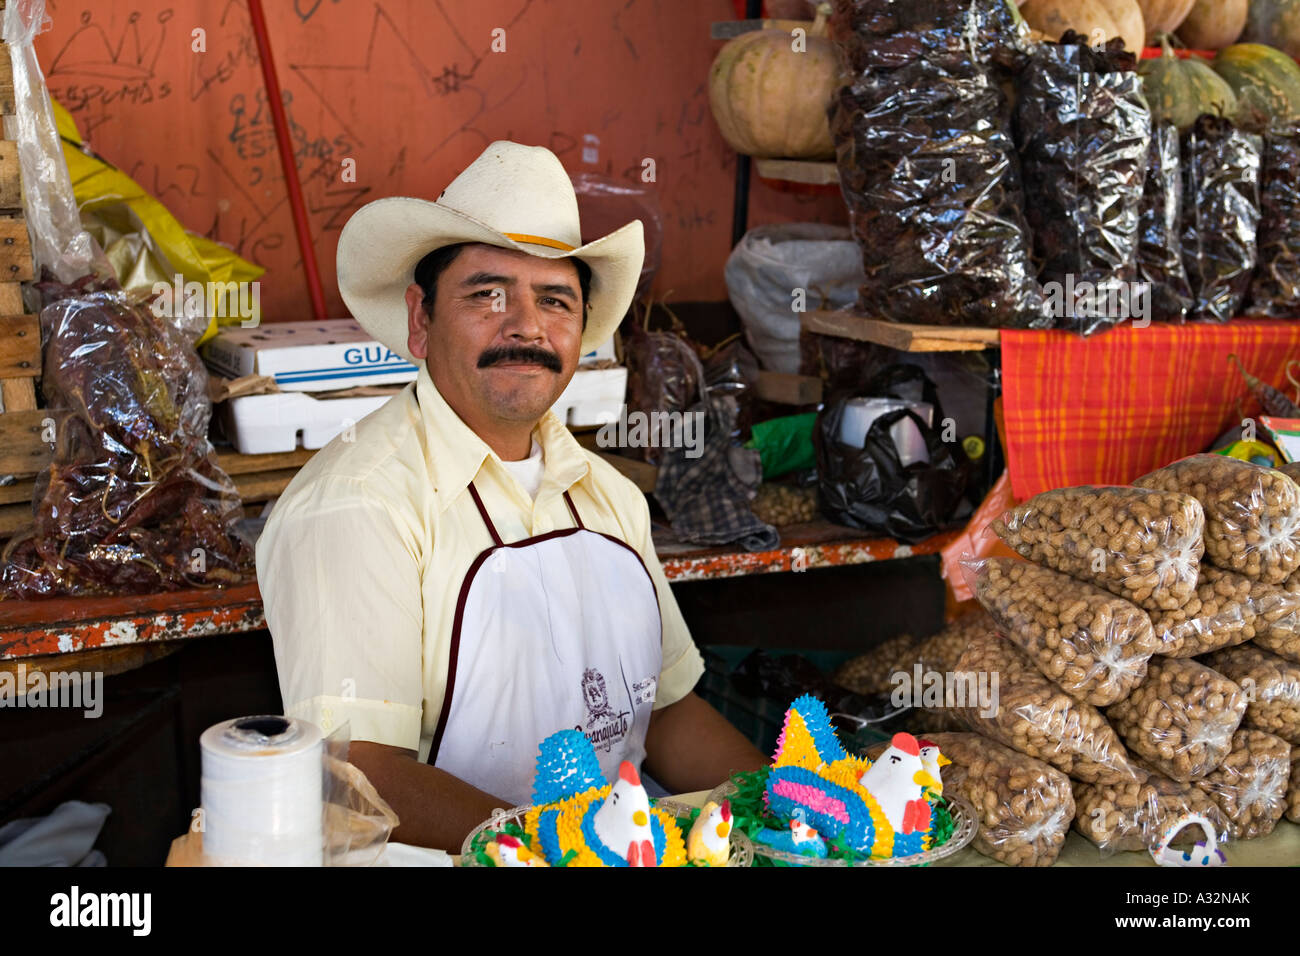 MEXICO San Miguel de Allende Mexican man wearing cowboy hat sell dried  chiles nuts and sweets for Day of the Dead 9bdd67343b6